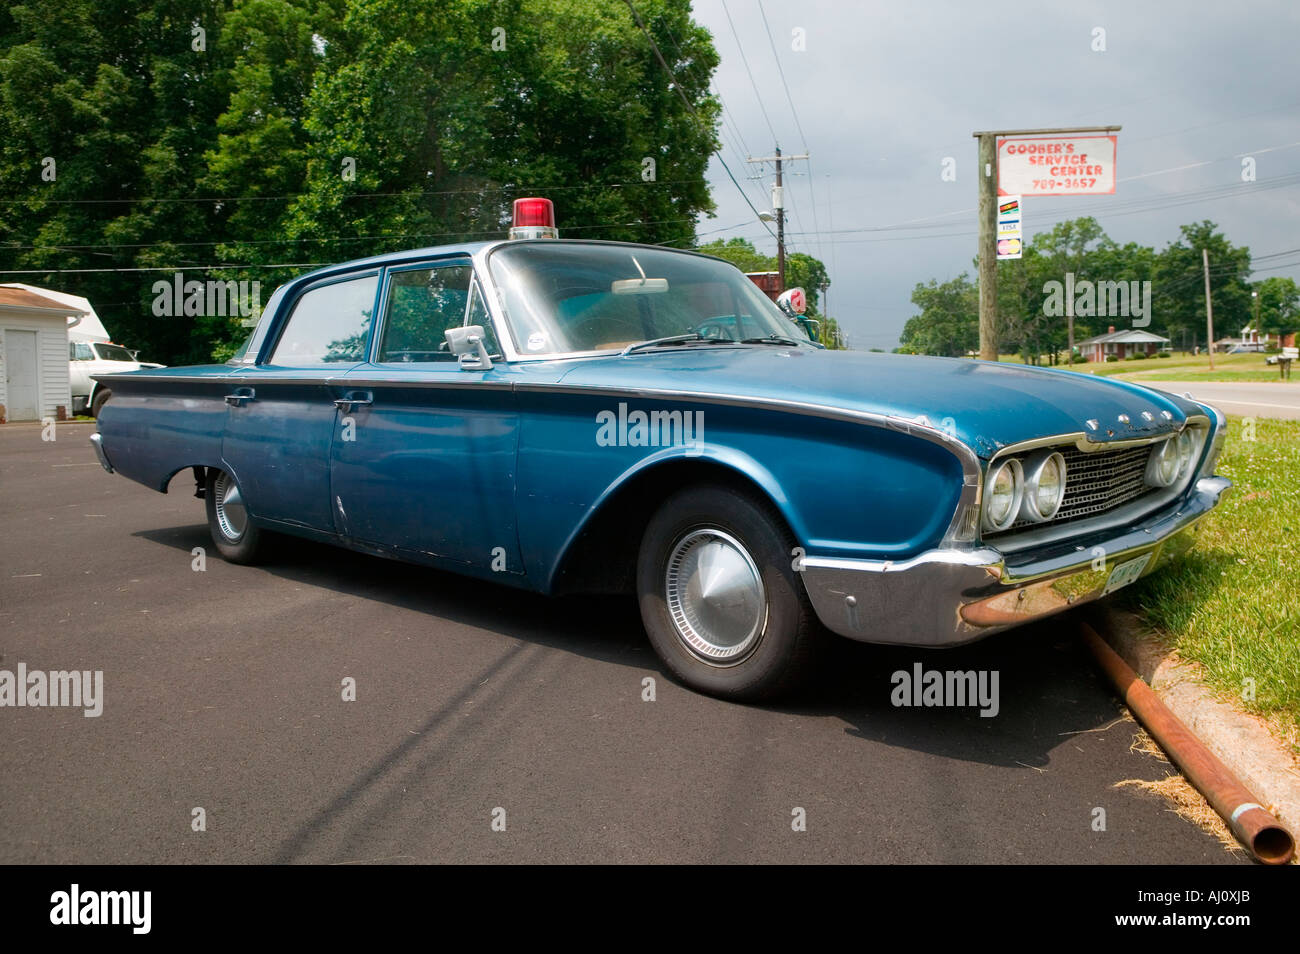 1960 Ford police car in Mount Airy North Carolina the town featured in Mayberry RFD - Stock Image